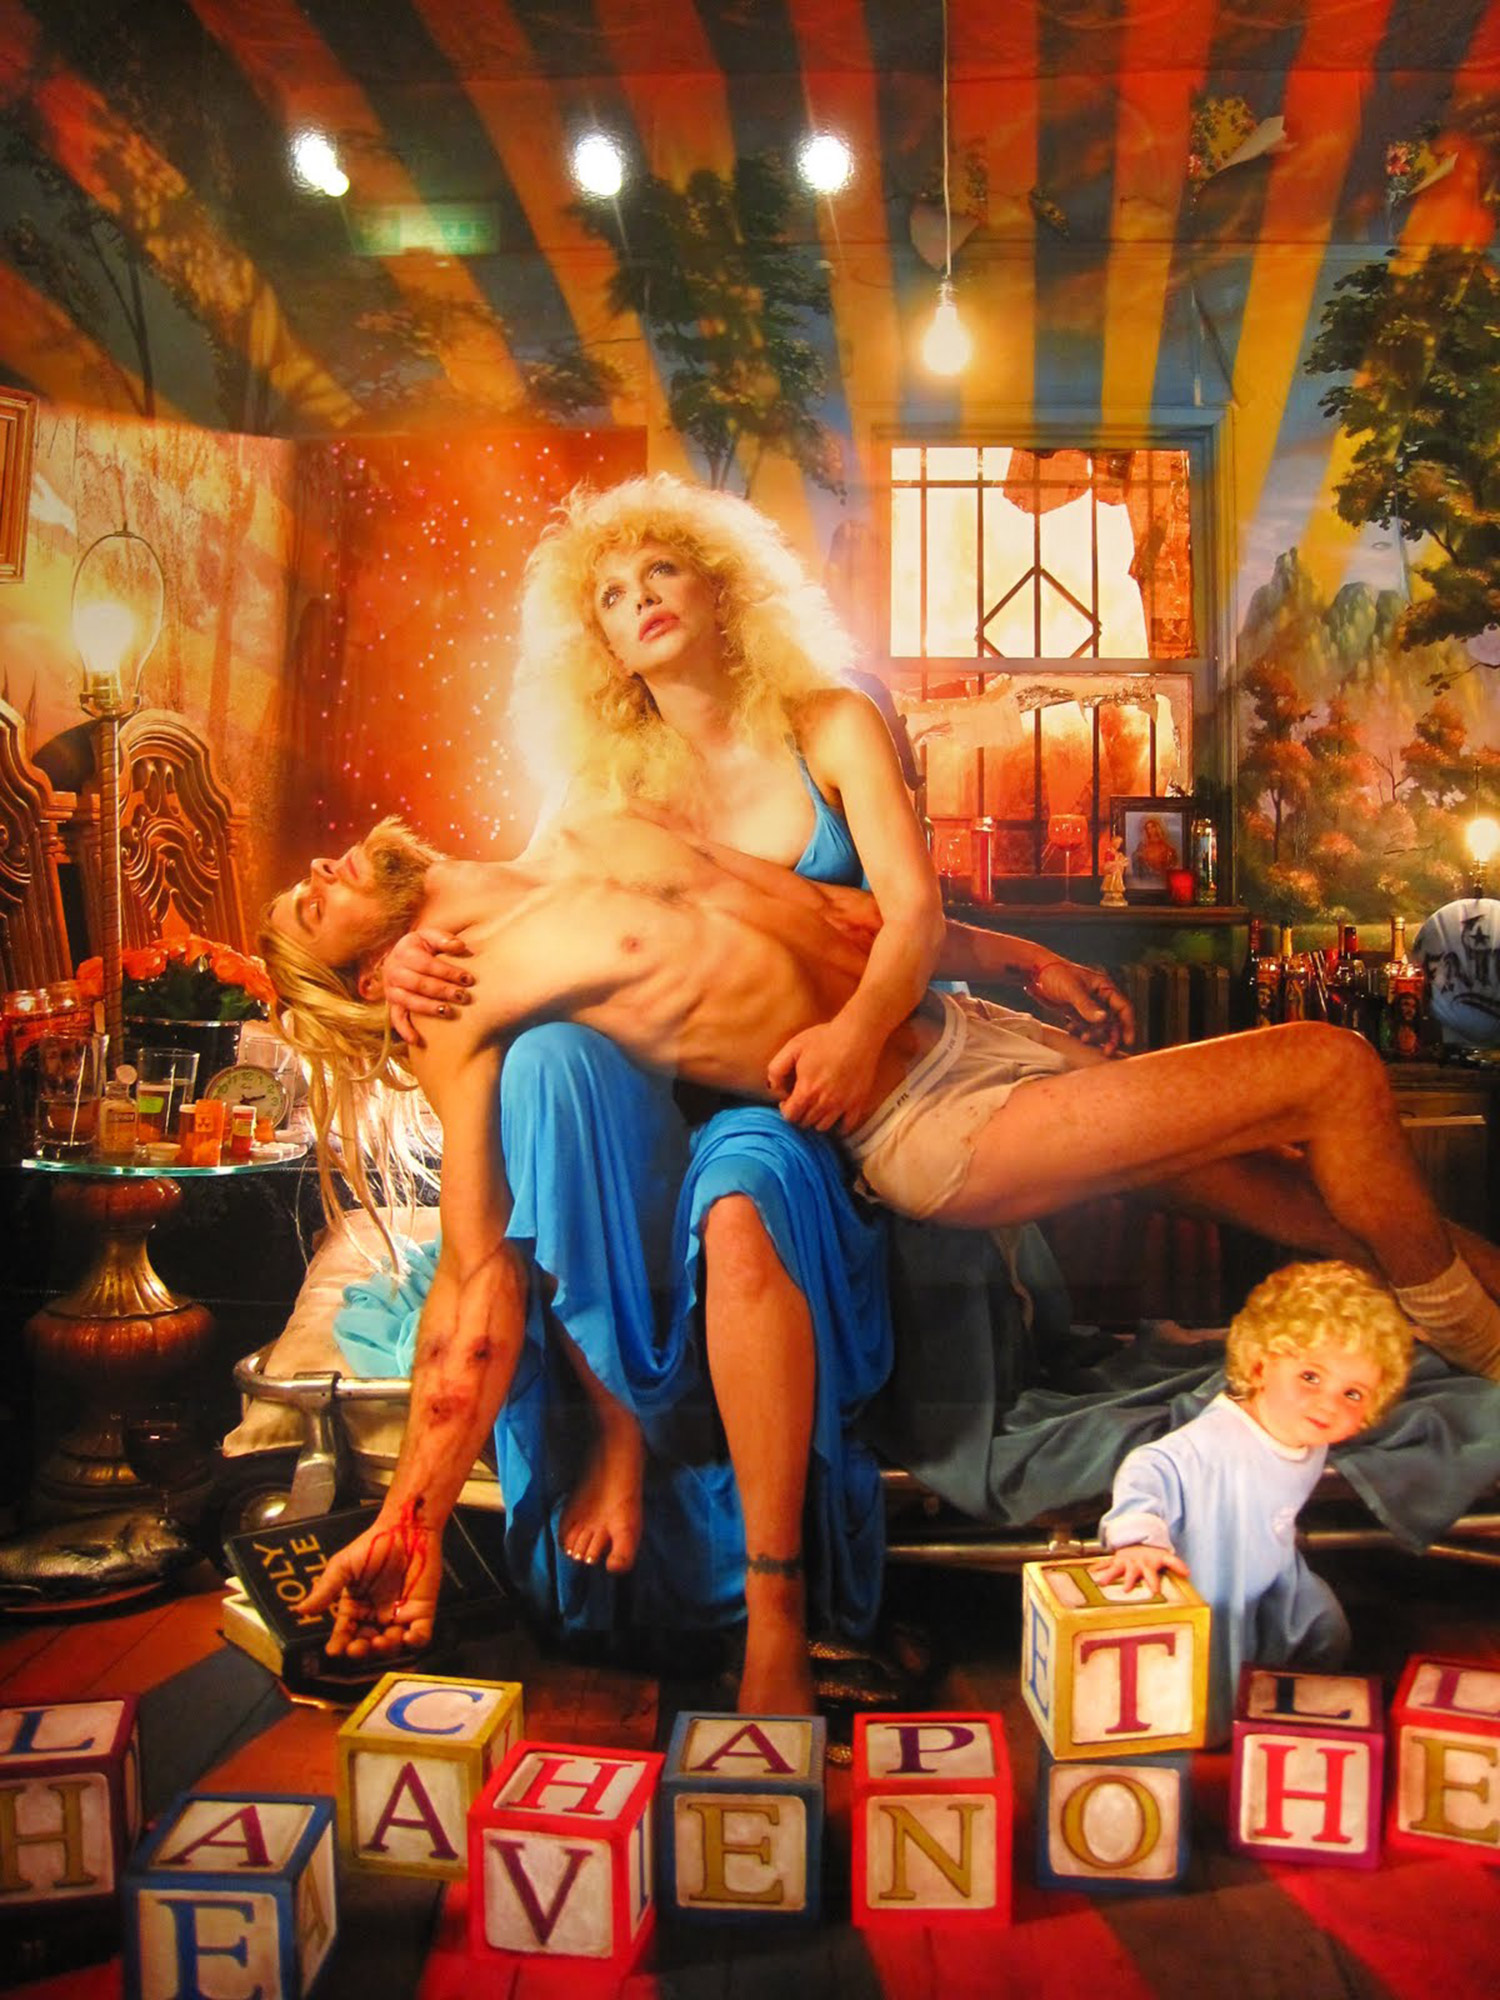 David Lachapelle - controversial image of Courtney Love as a Virgin Mary-type figure